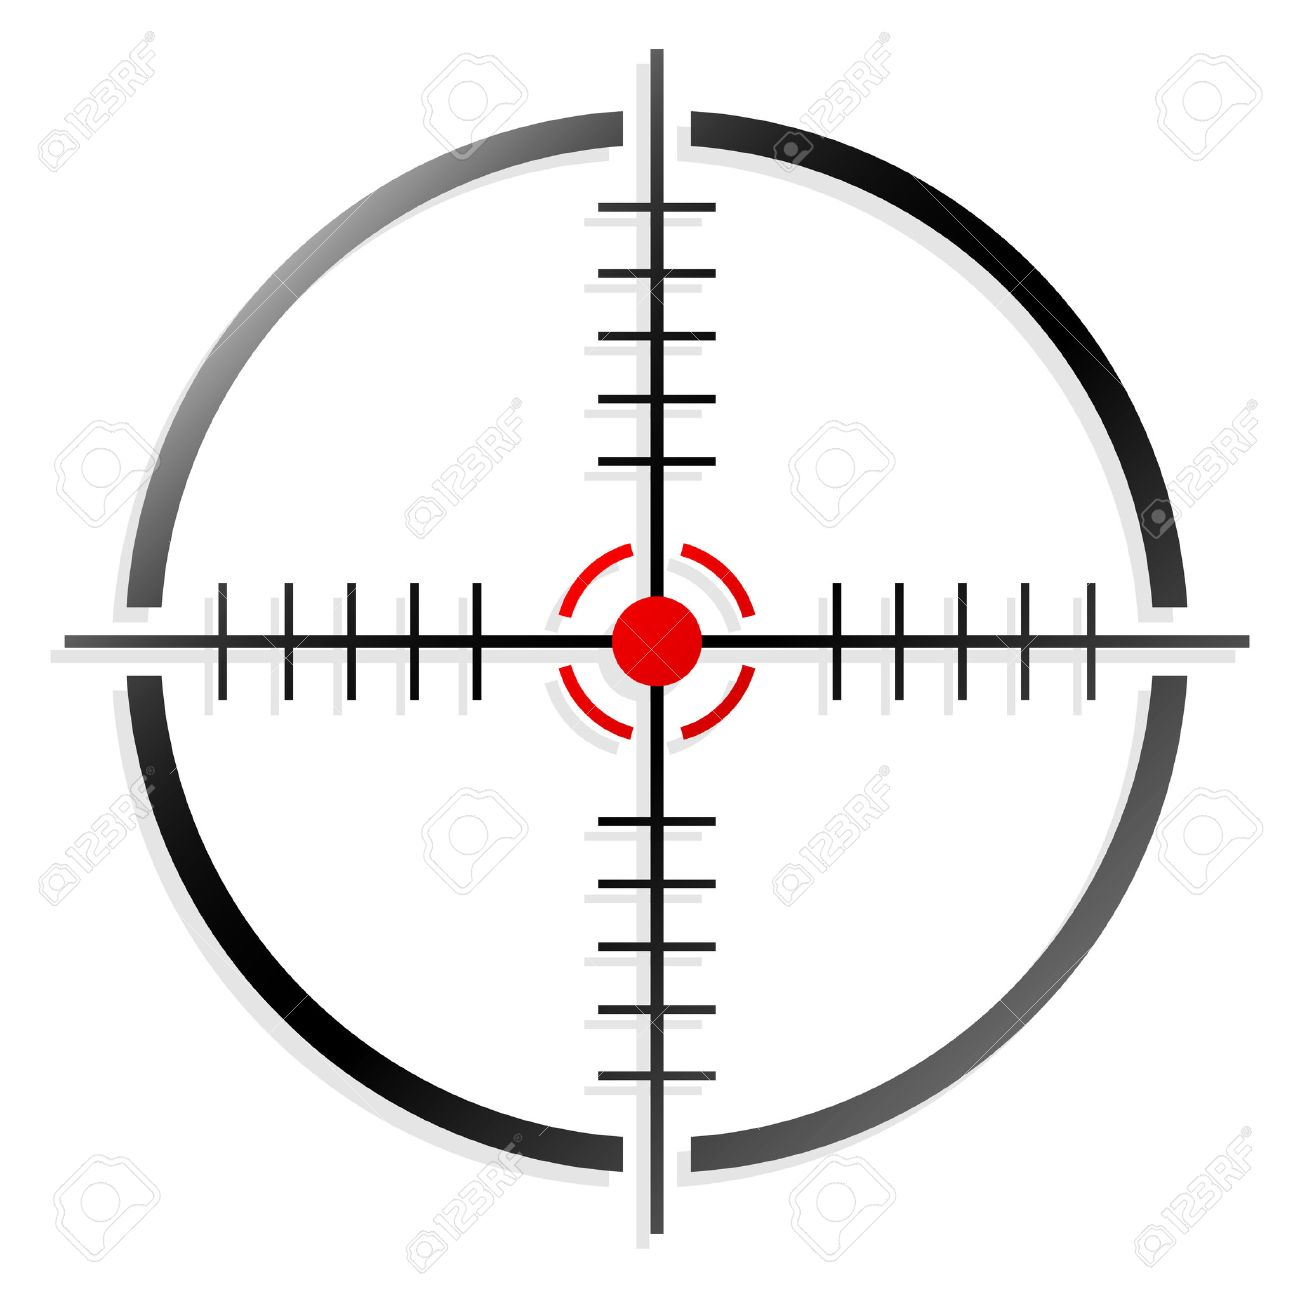 crosshair or reticle royalty free cliparts vectors and stock rh 123rf com crosshair vector free download vector crosshair target